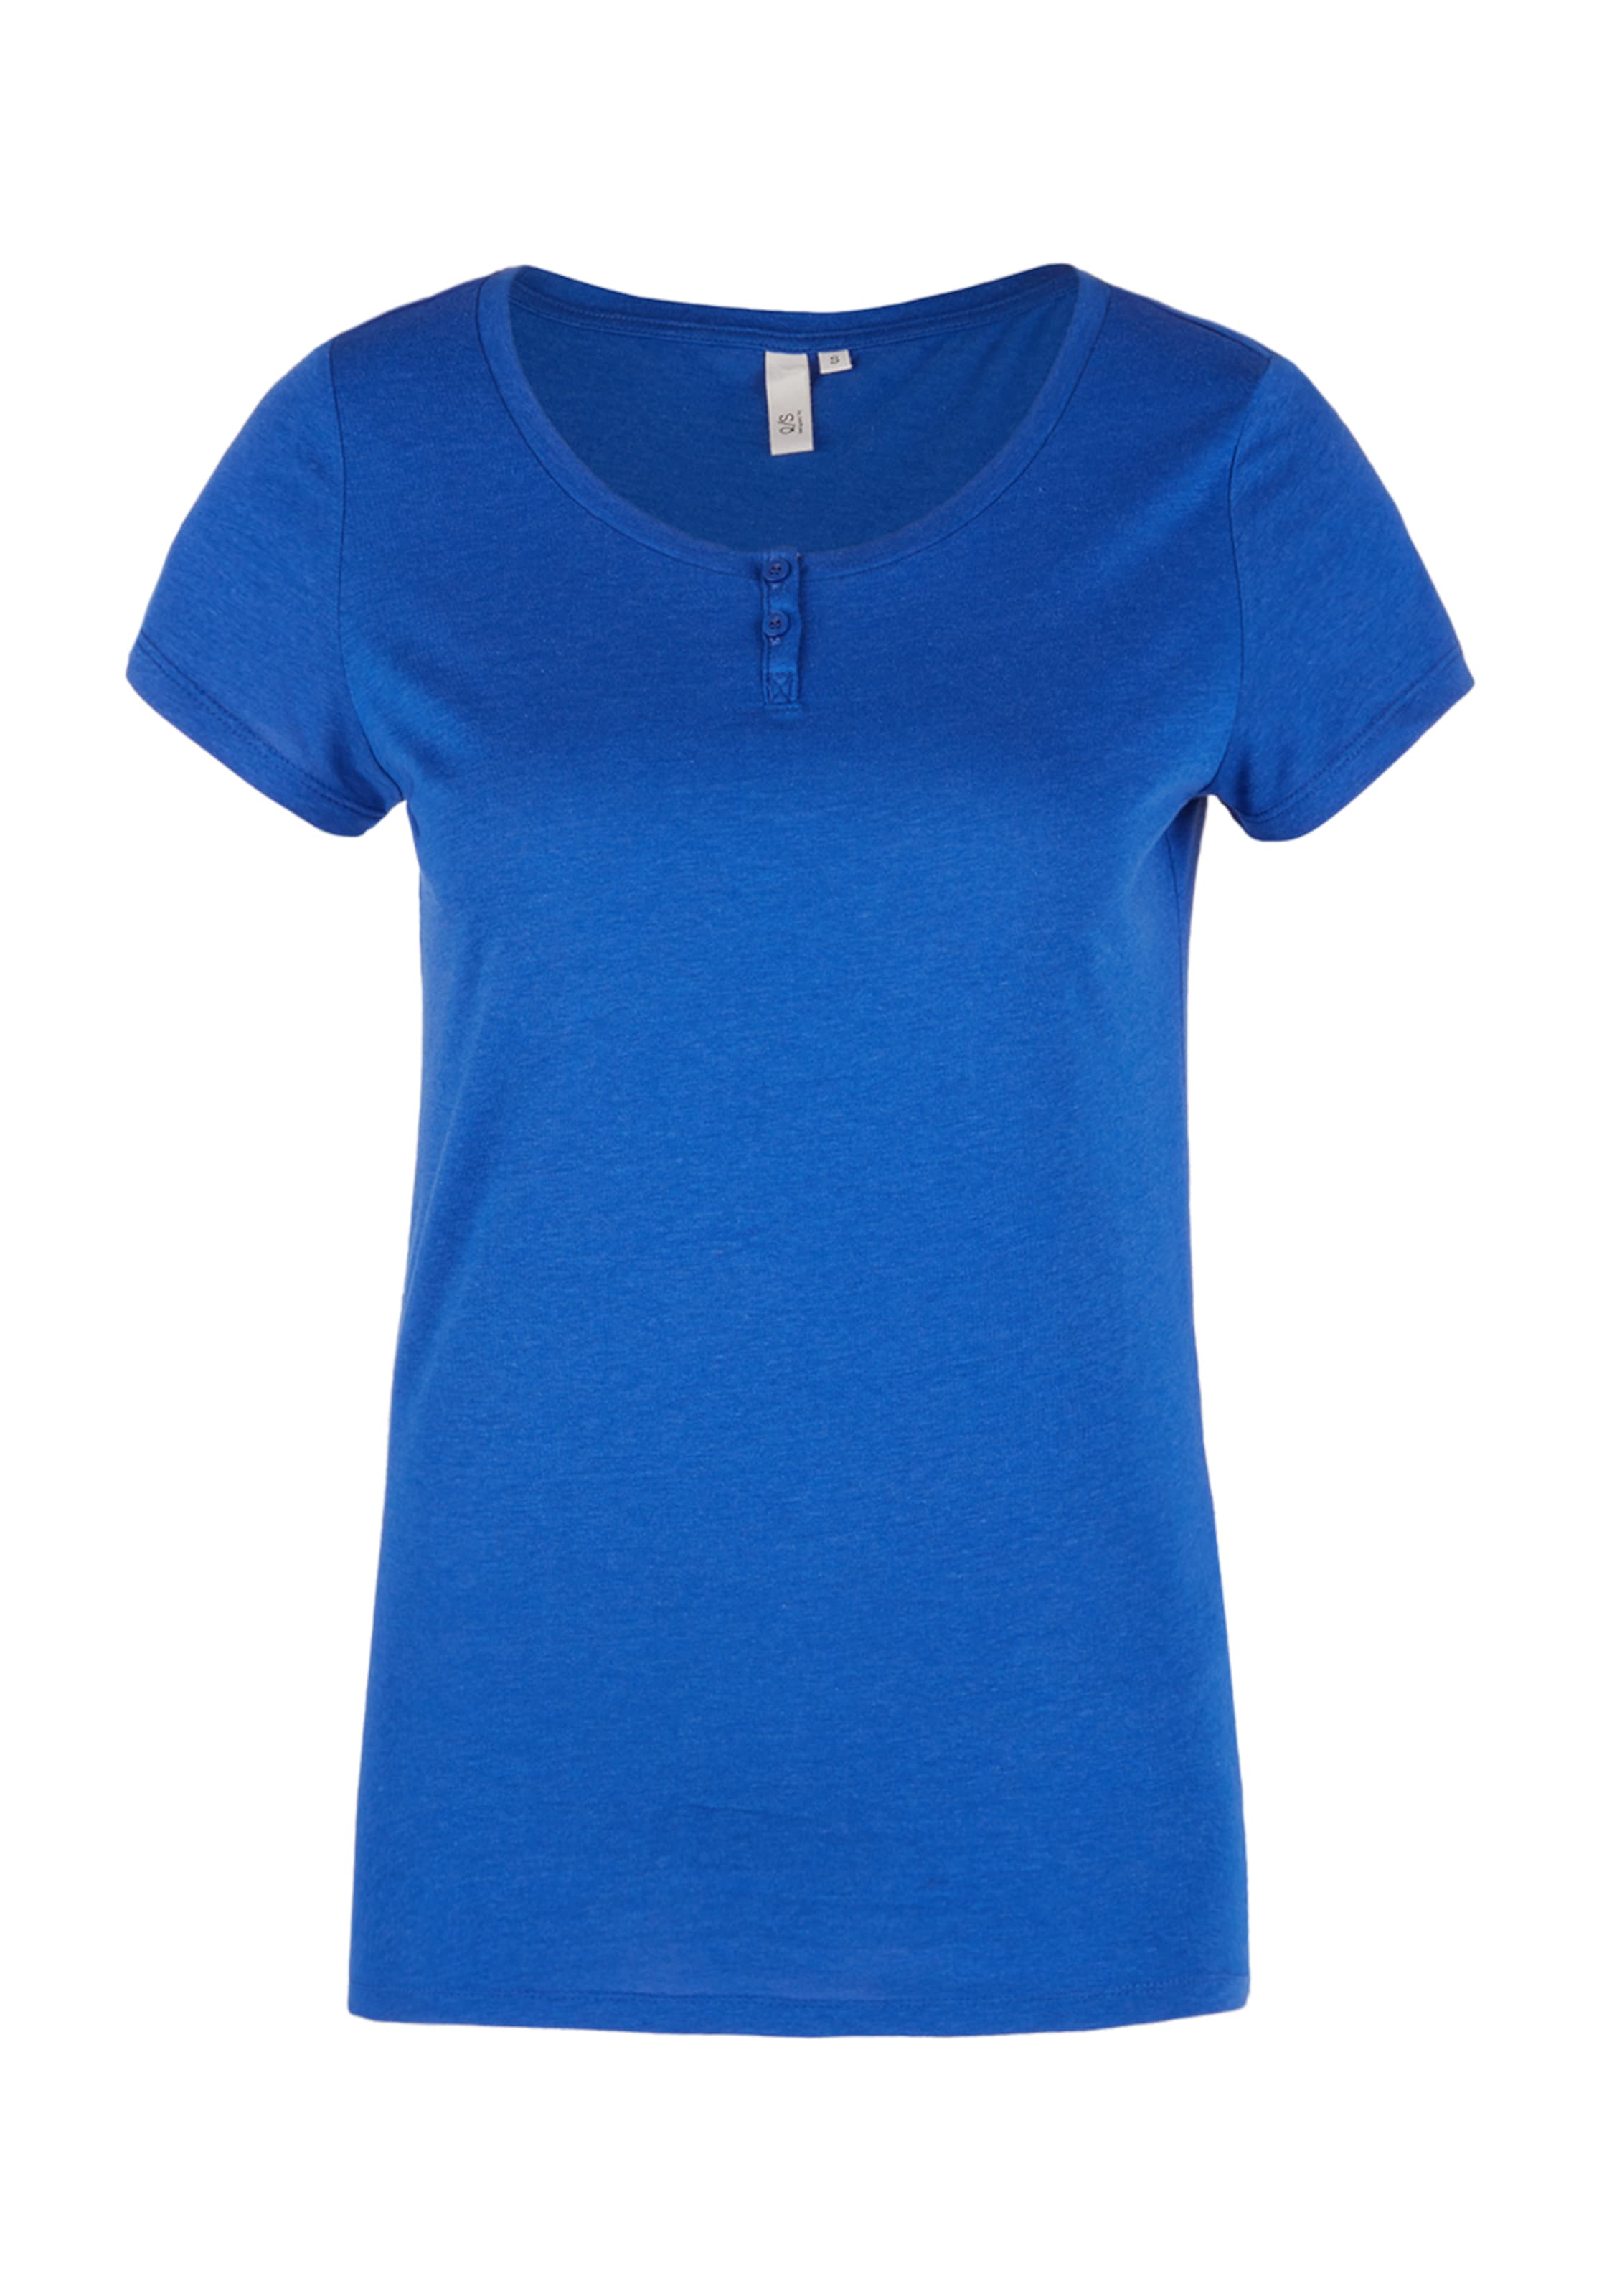 Designed Q s In By Shirt Blau P0kw8On